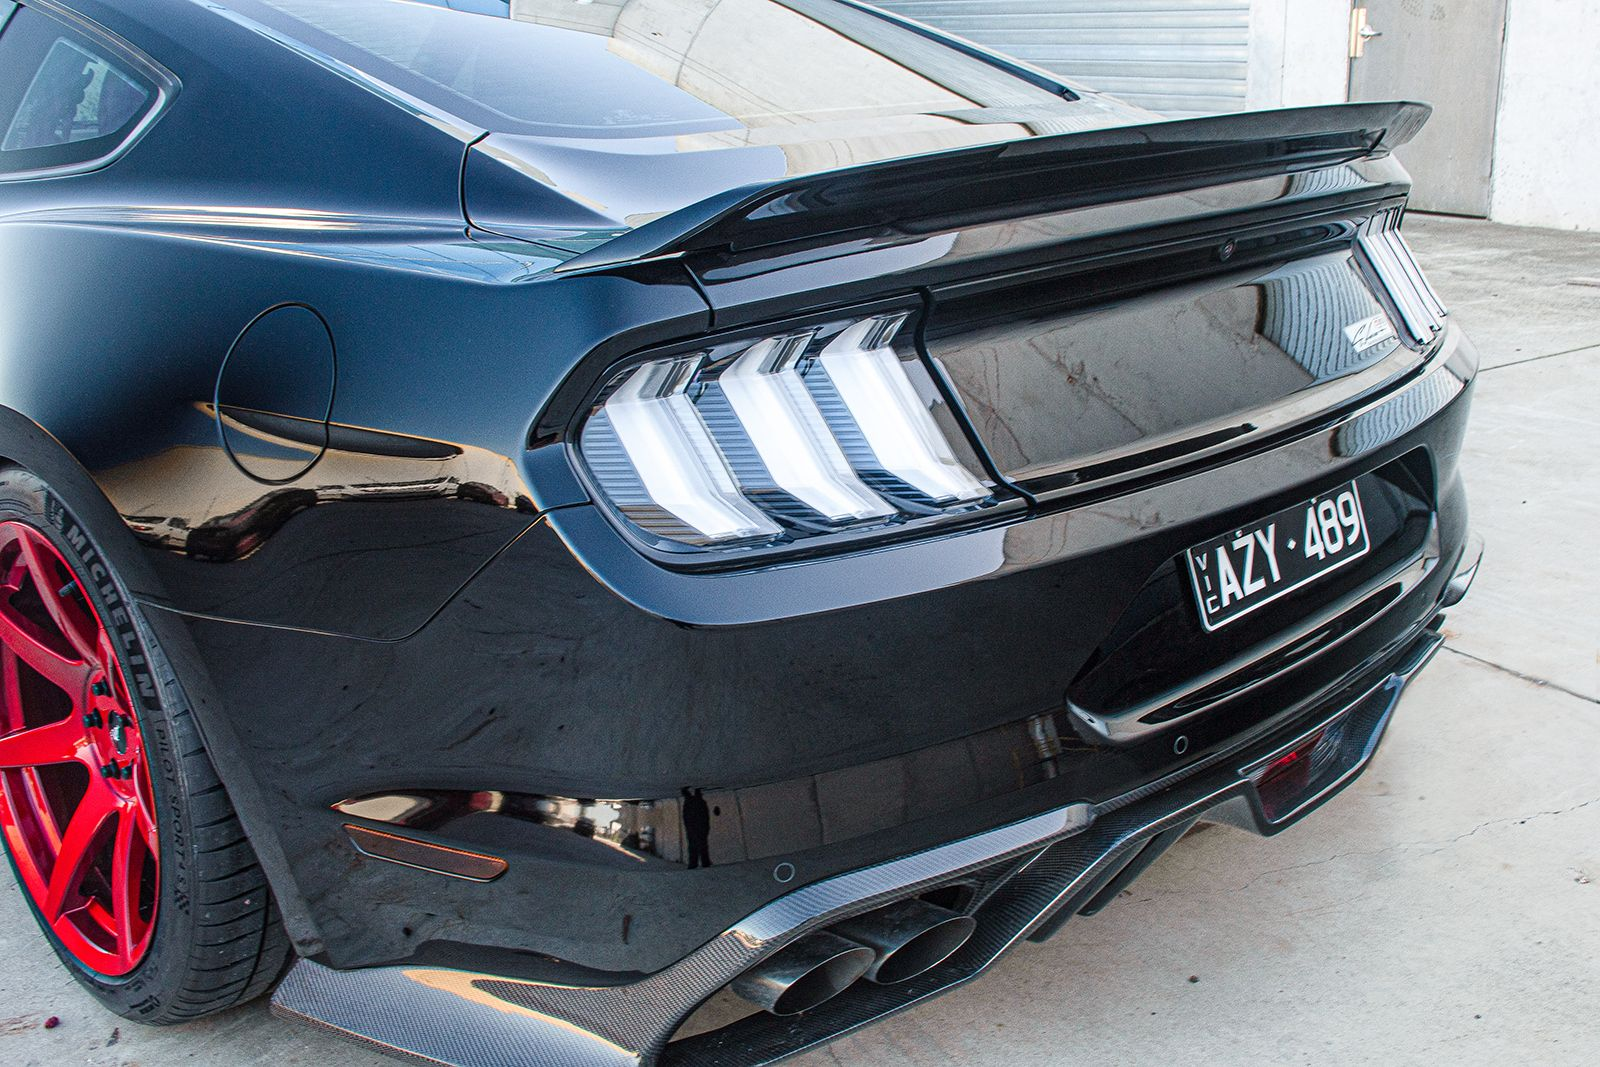 Cam's Mustang Feature Cam's specified his car to have an